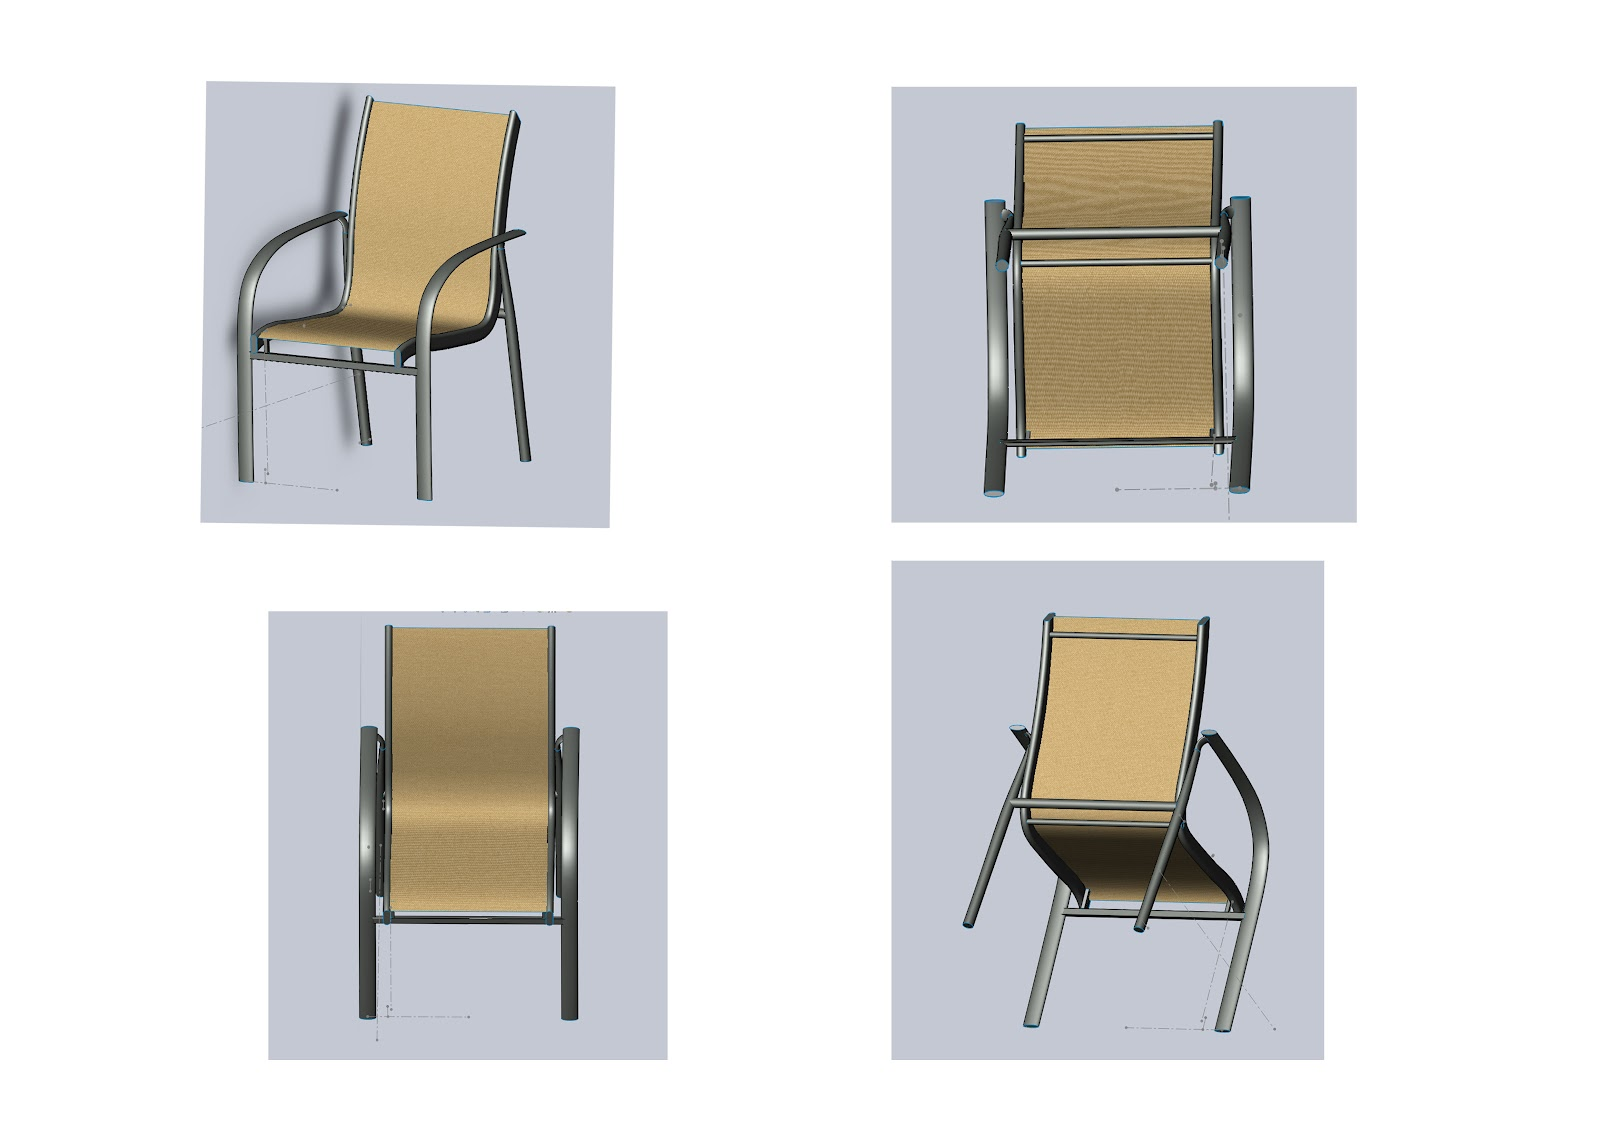 chair design solidworks hire covers cheap hd3d002 furniture research part b cad drawing